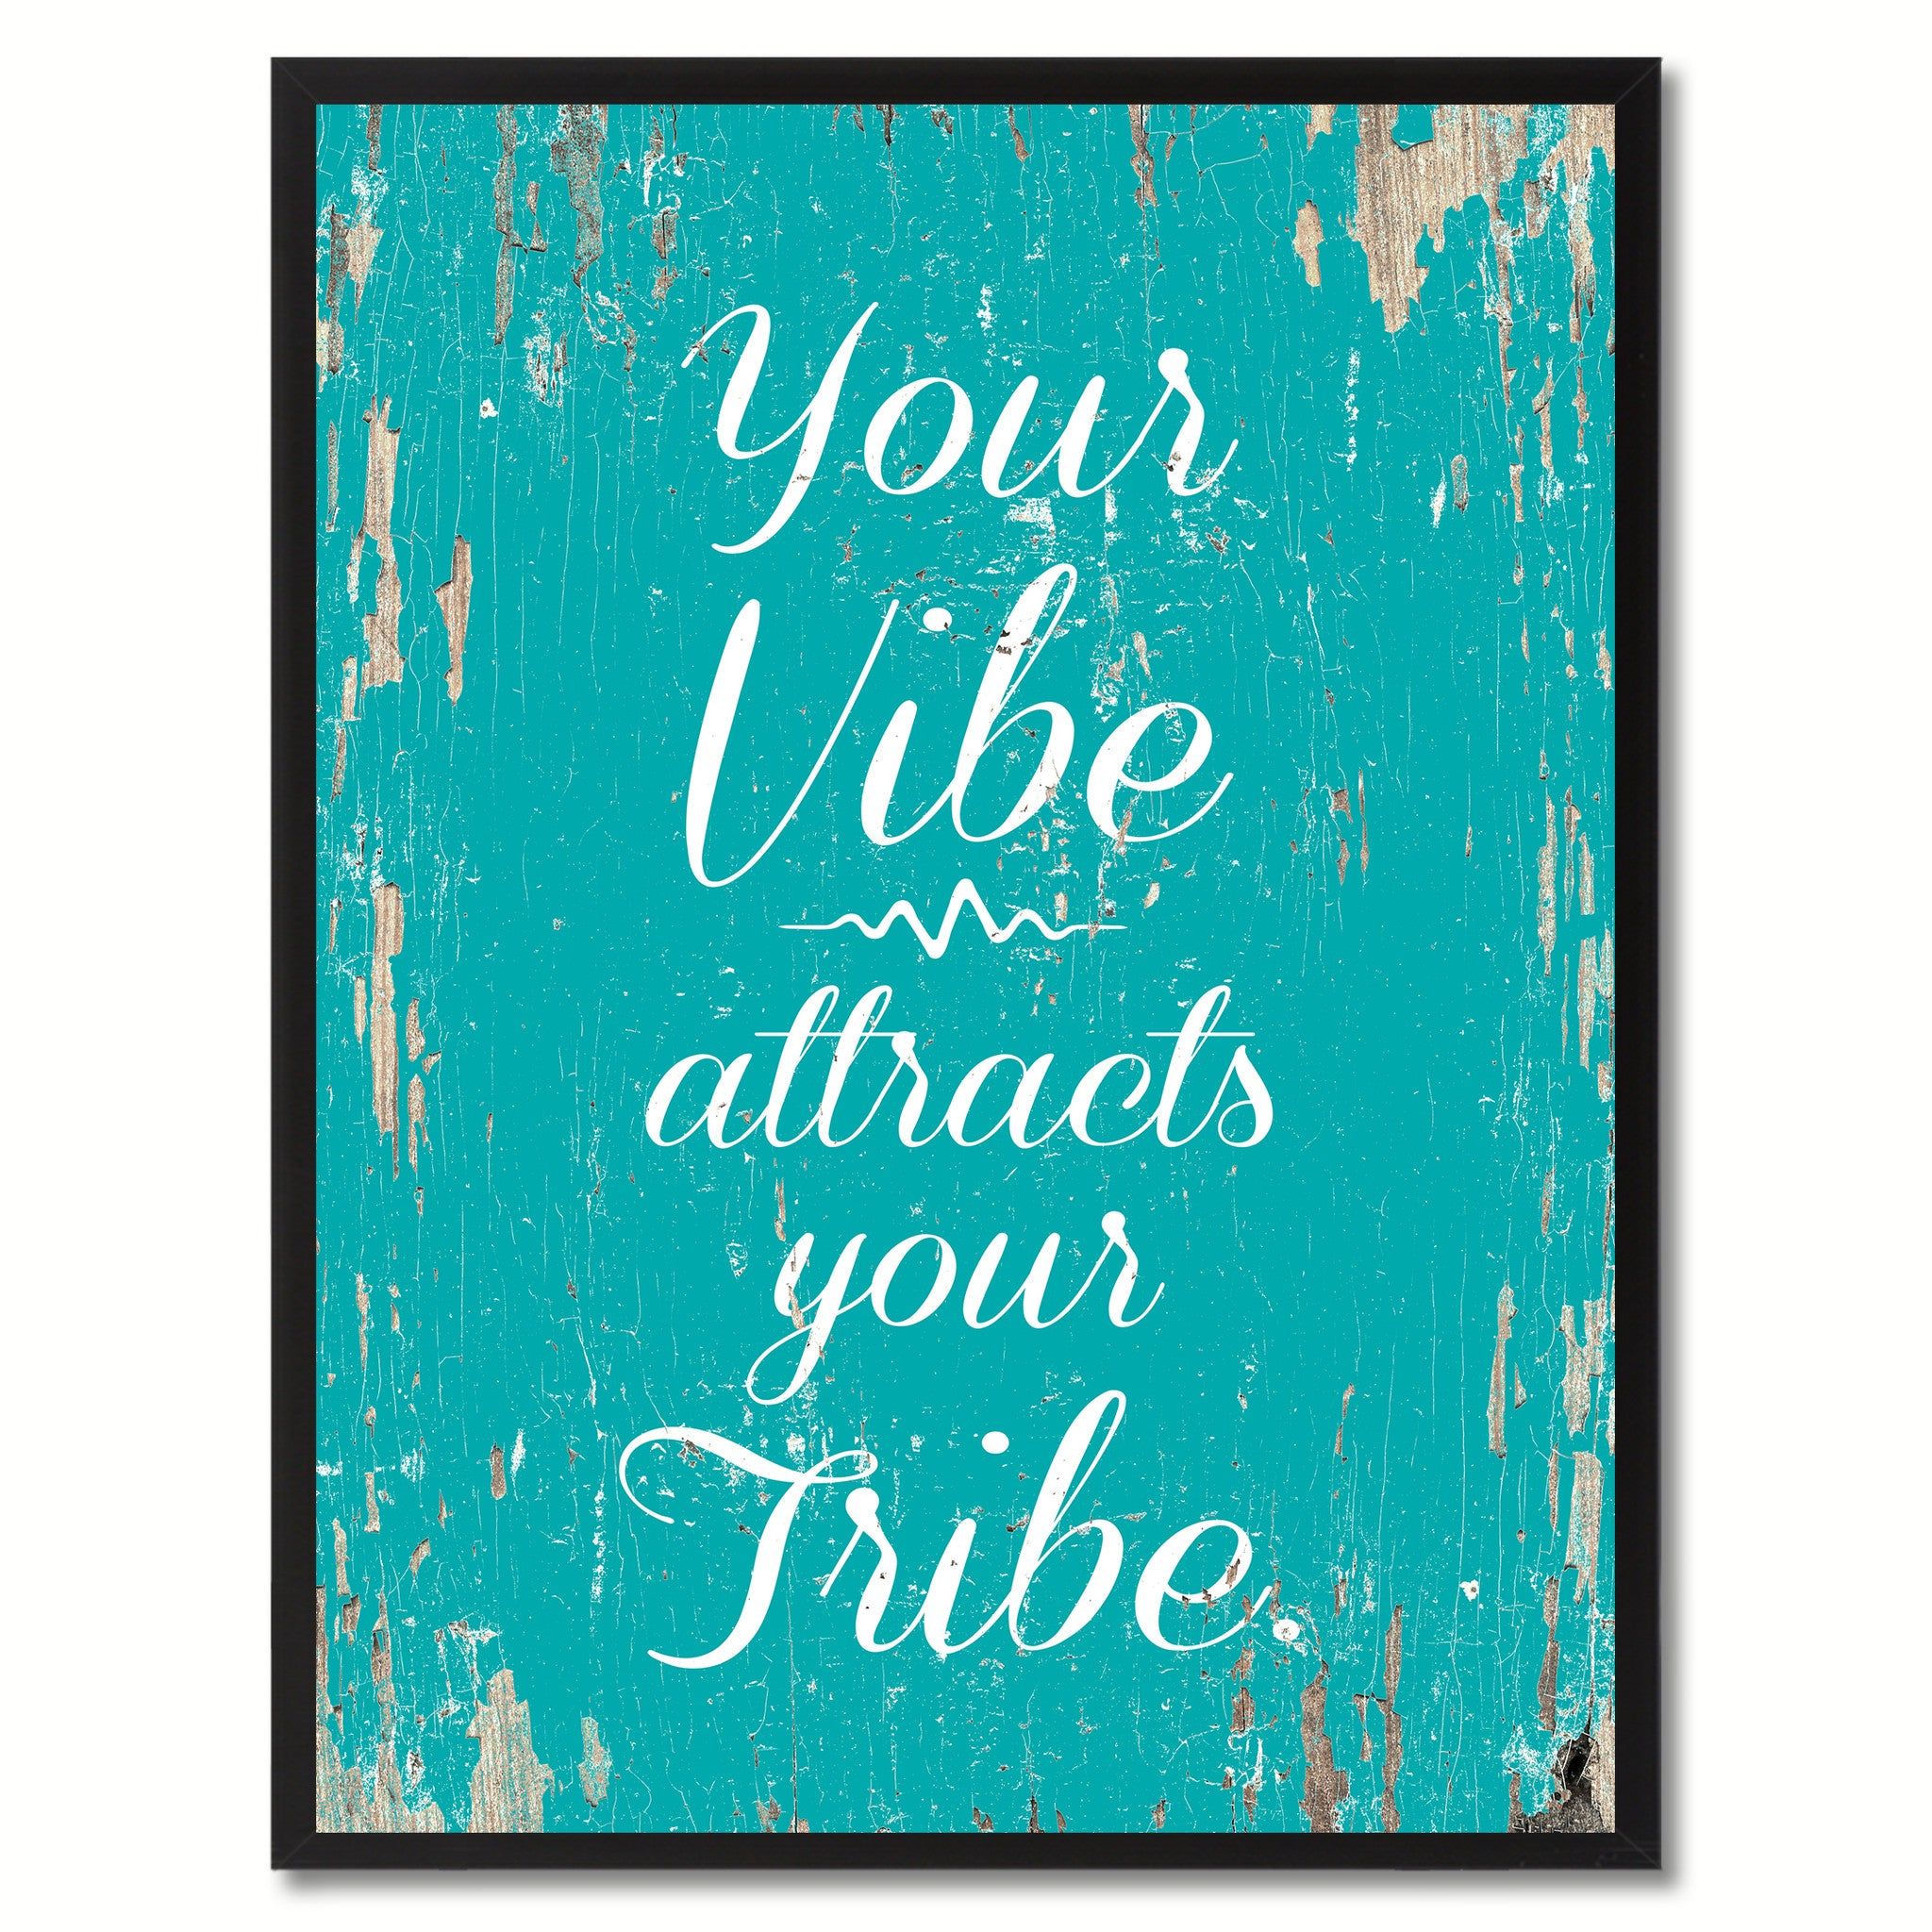 Your vibe attracts your tribe Inspirational Quote Saying Framed Canvas Print Gift Ideas Home Decor Wall Art, Aqua